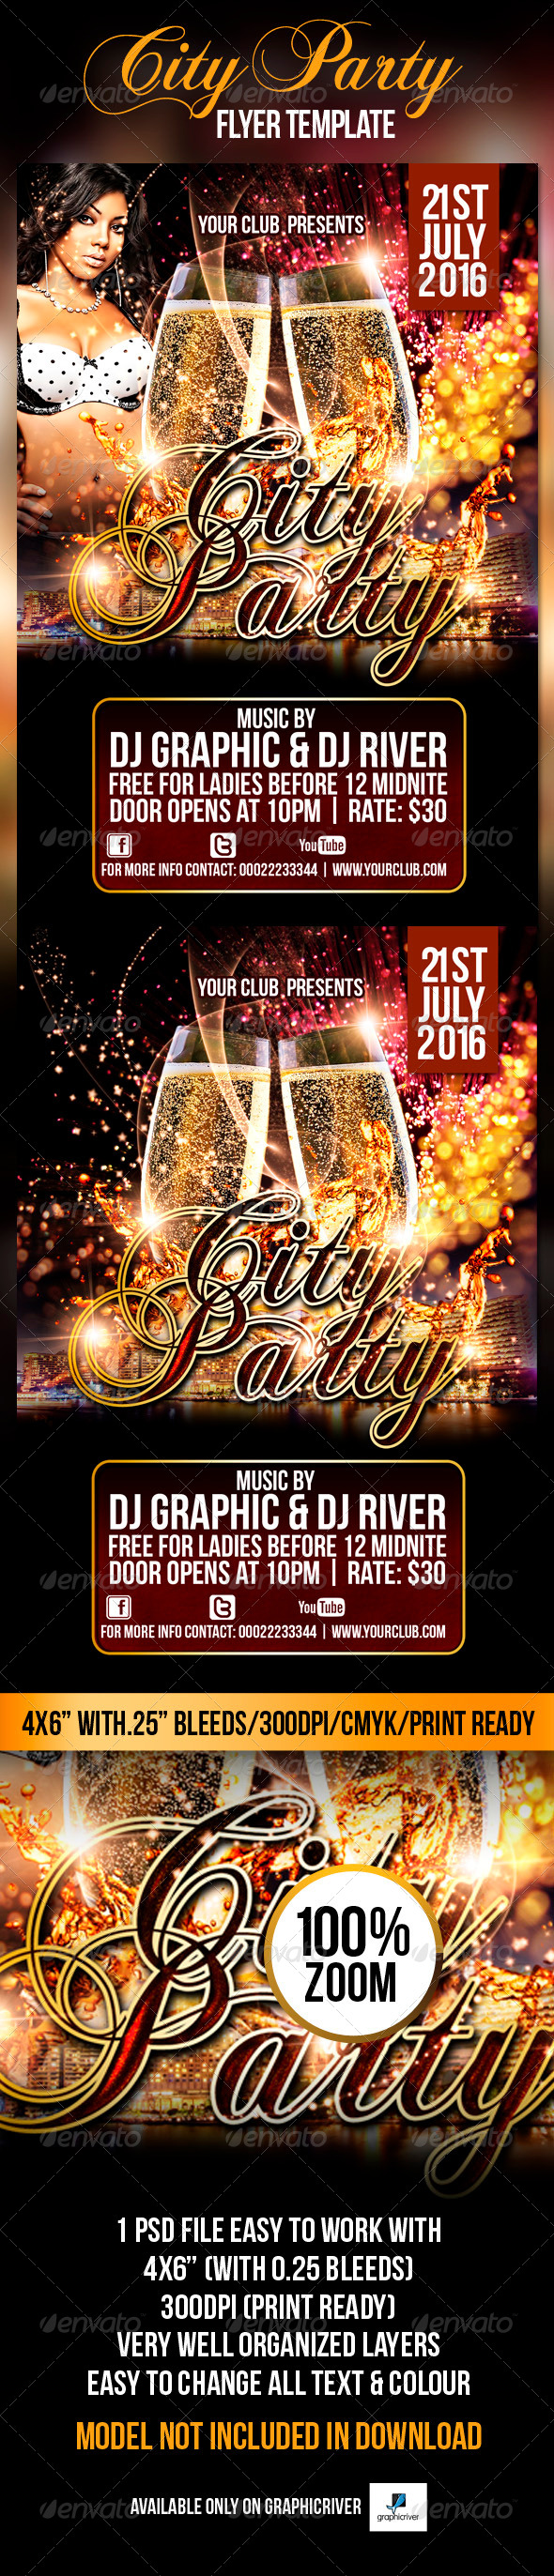 City Party Flyer Template - Flyers Print Templates